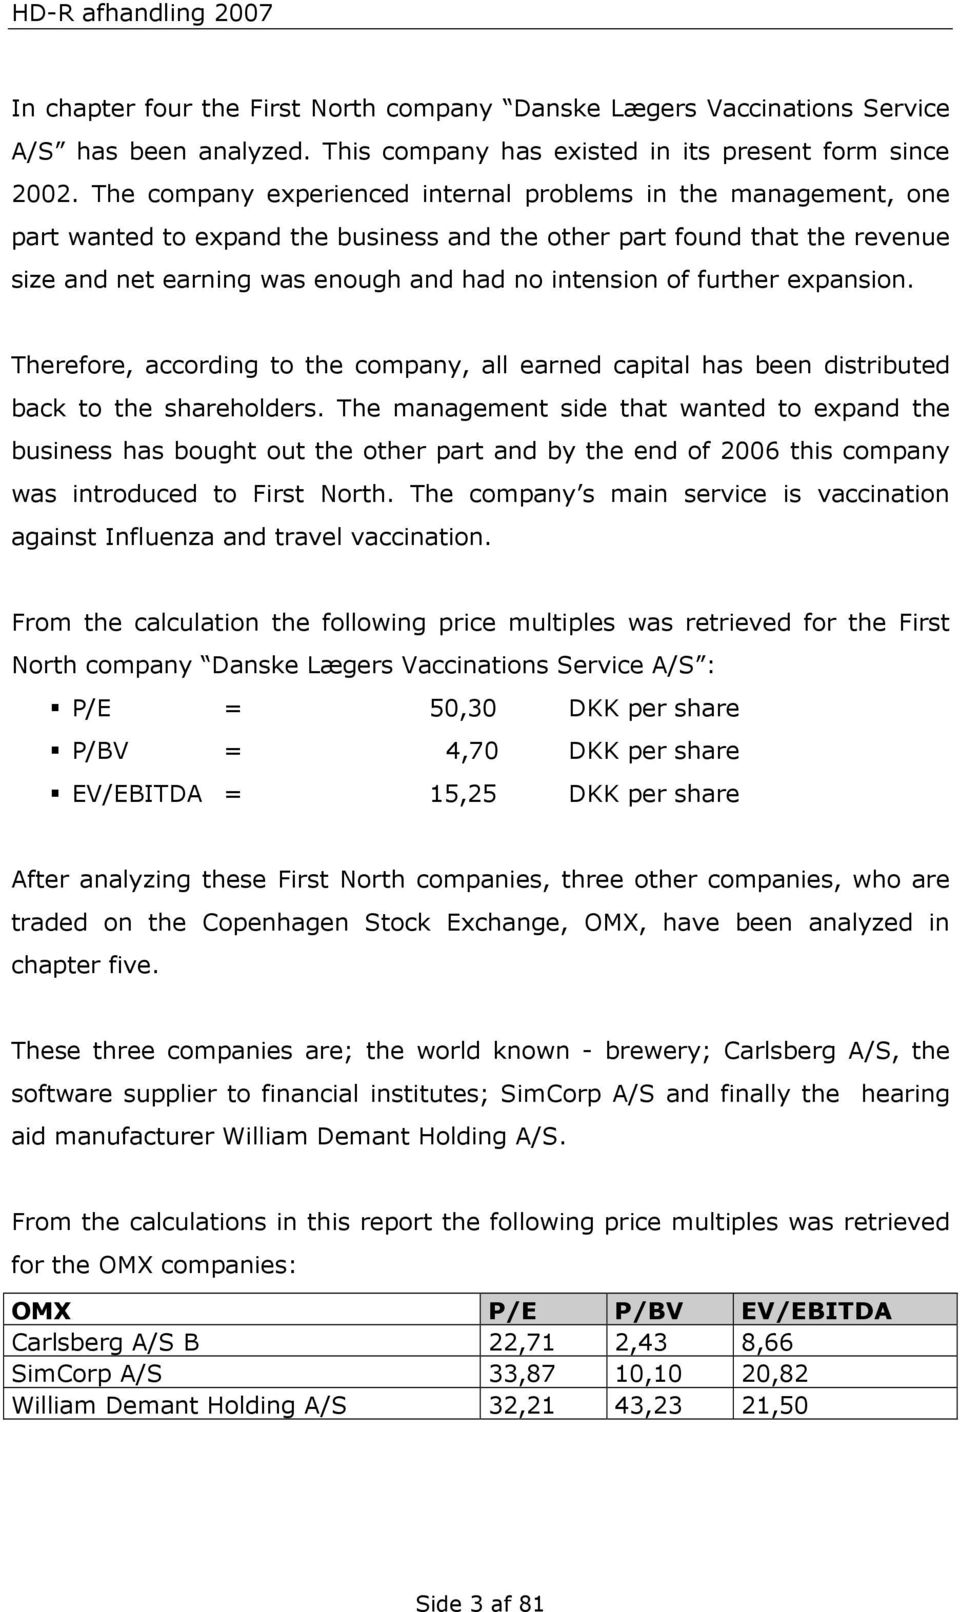 further expansion. Therefore, according to the company, all earned capital has been distributed back to the shareholders.